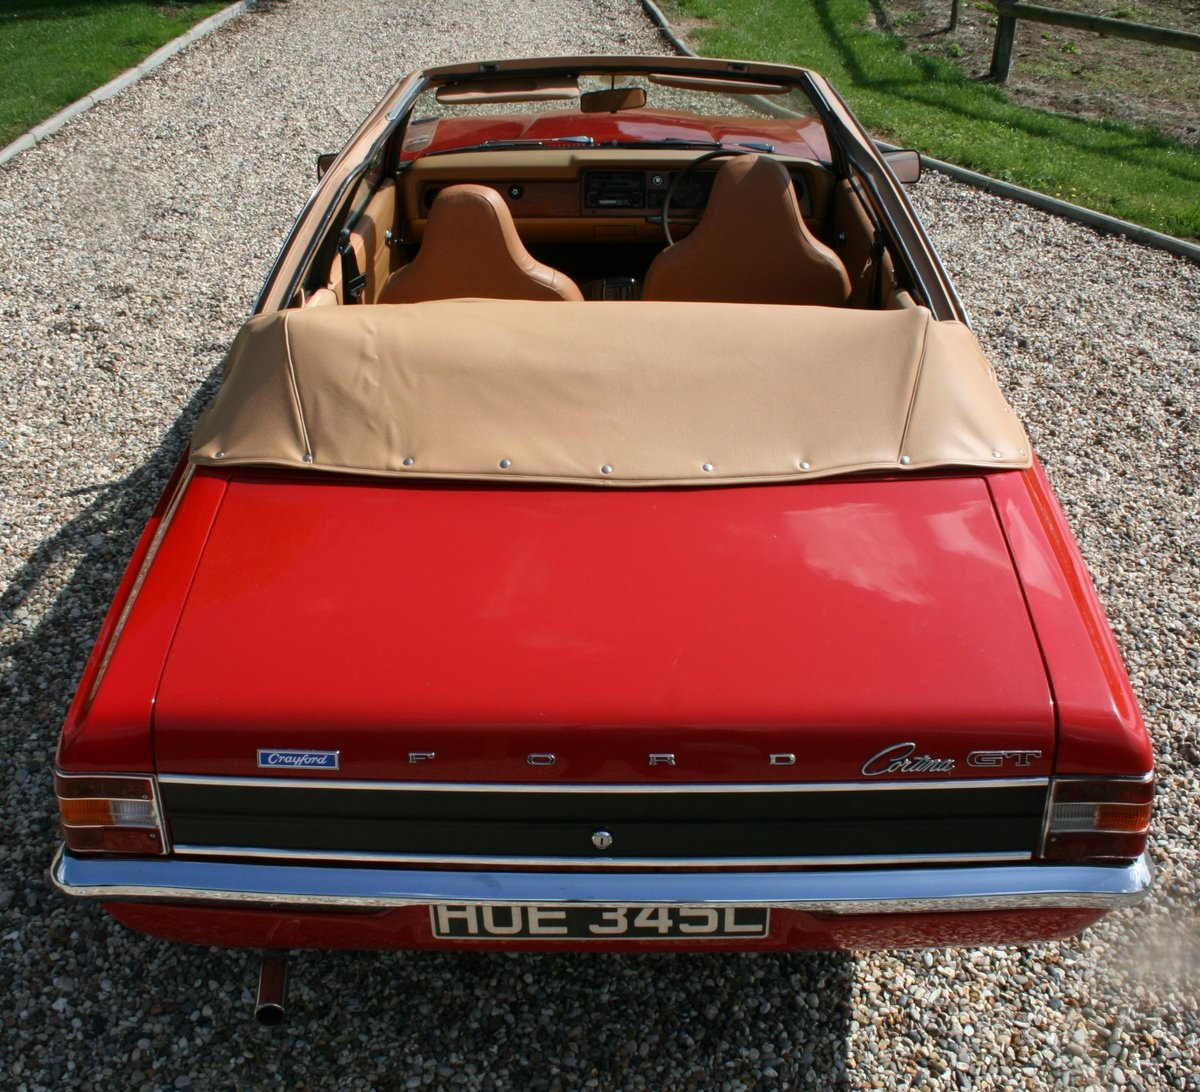 1972 Ford Cortina Crayford.NOW SOLD,MORE UNUSUAL FORDS Wanted (picture 2 of 6)